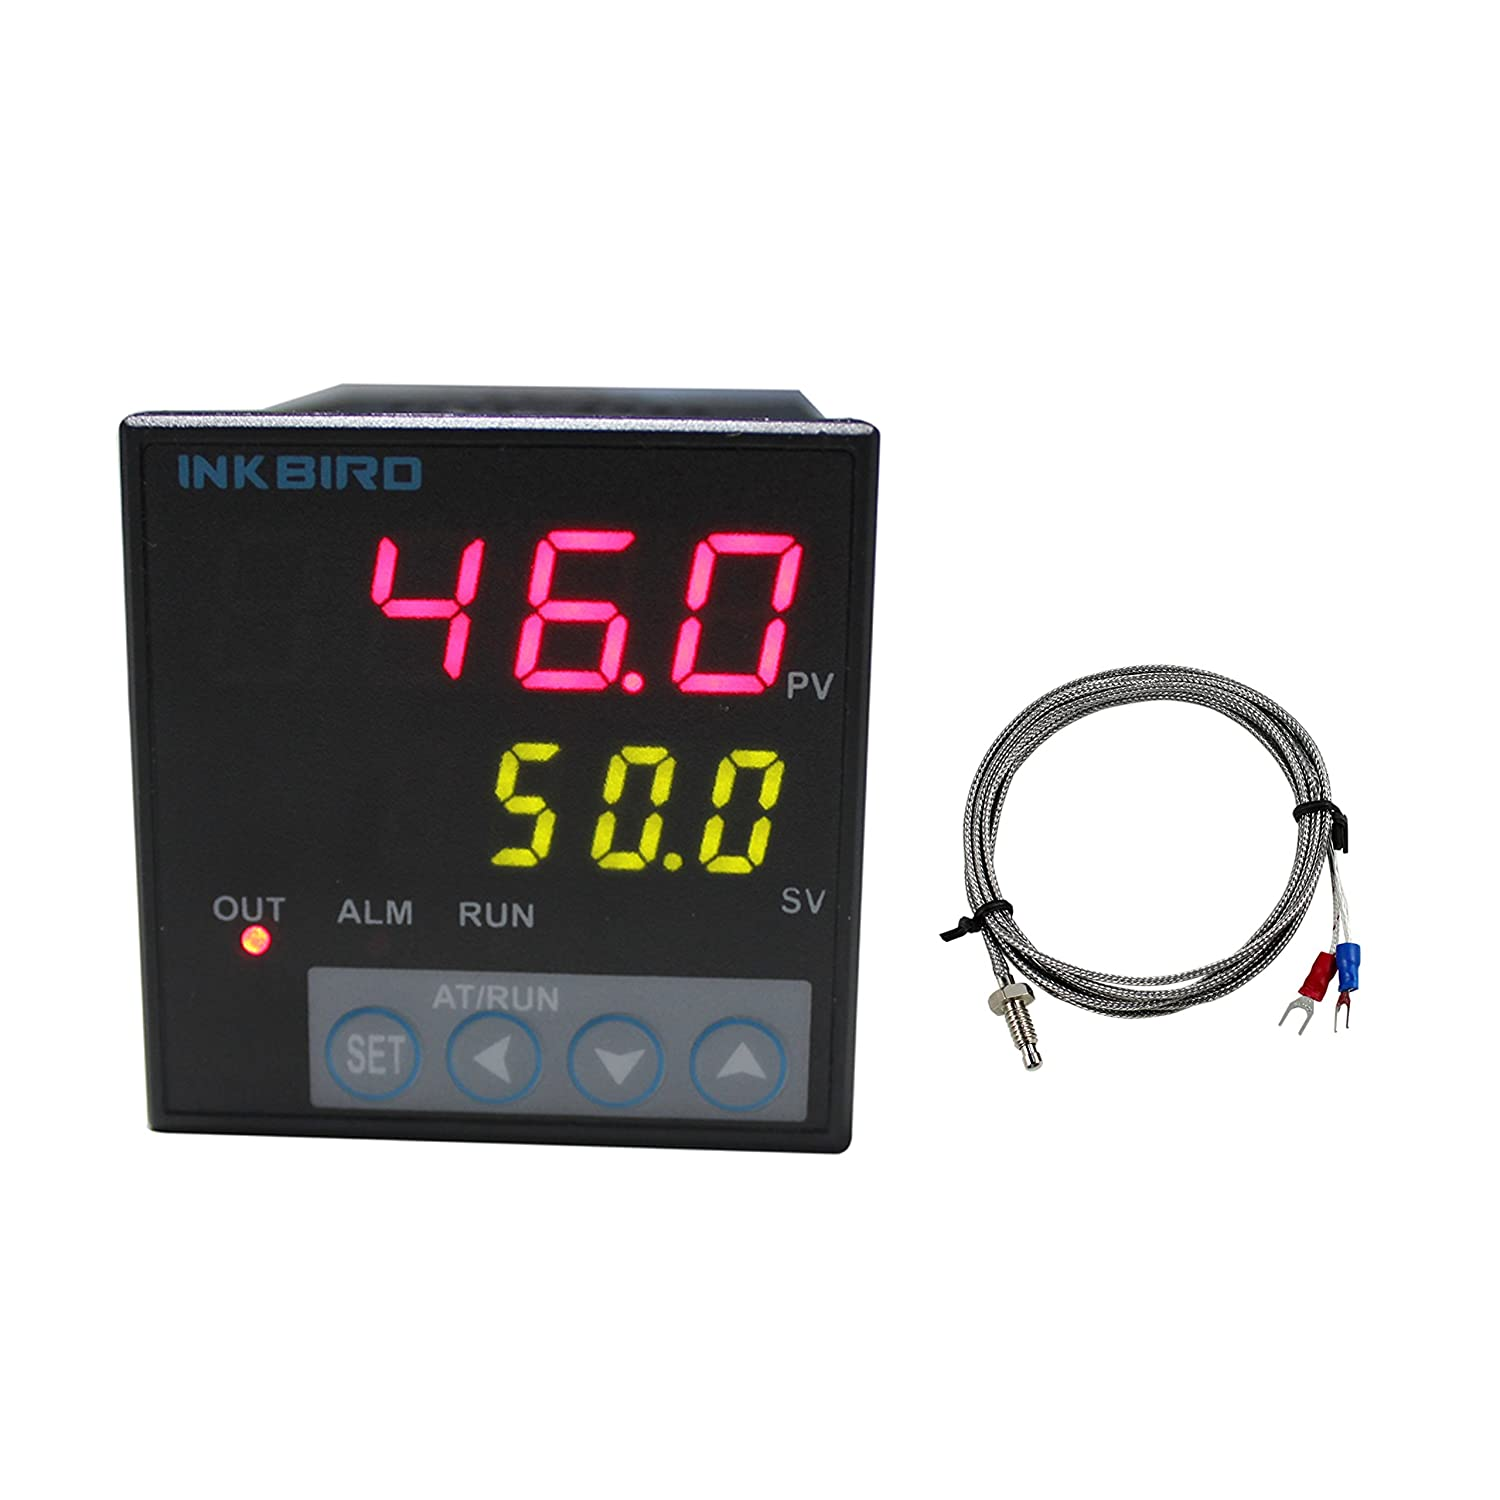 Inkbird ITC-106VH PID Temperature Thermostat Controllers F and C AC 100 to 240V with K Sensor for Sous Vide Home Brewing Oven Incubator